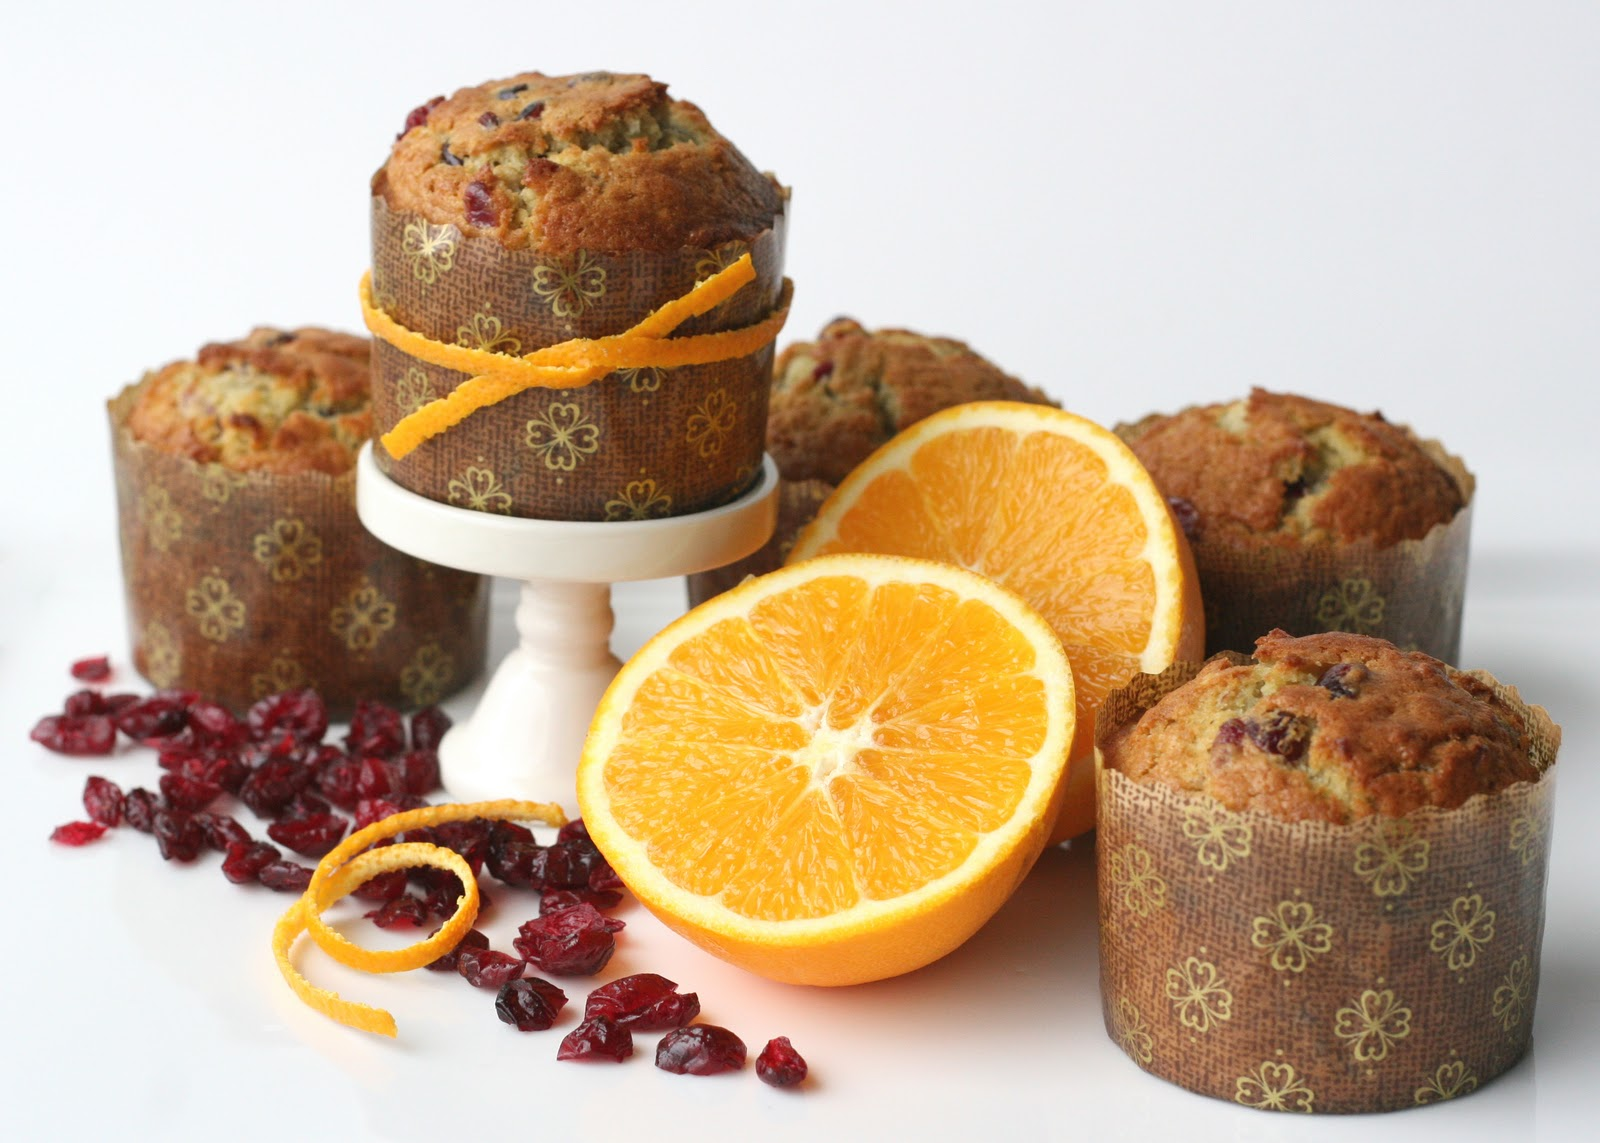 wallpaper trends: Cranberry-Orange Muffins {Delicious Recipe}